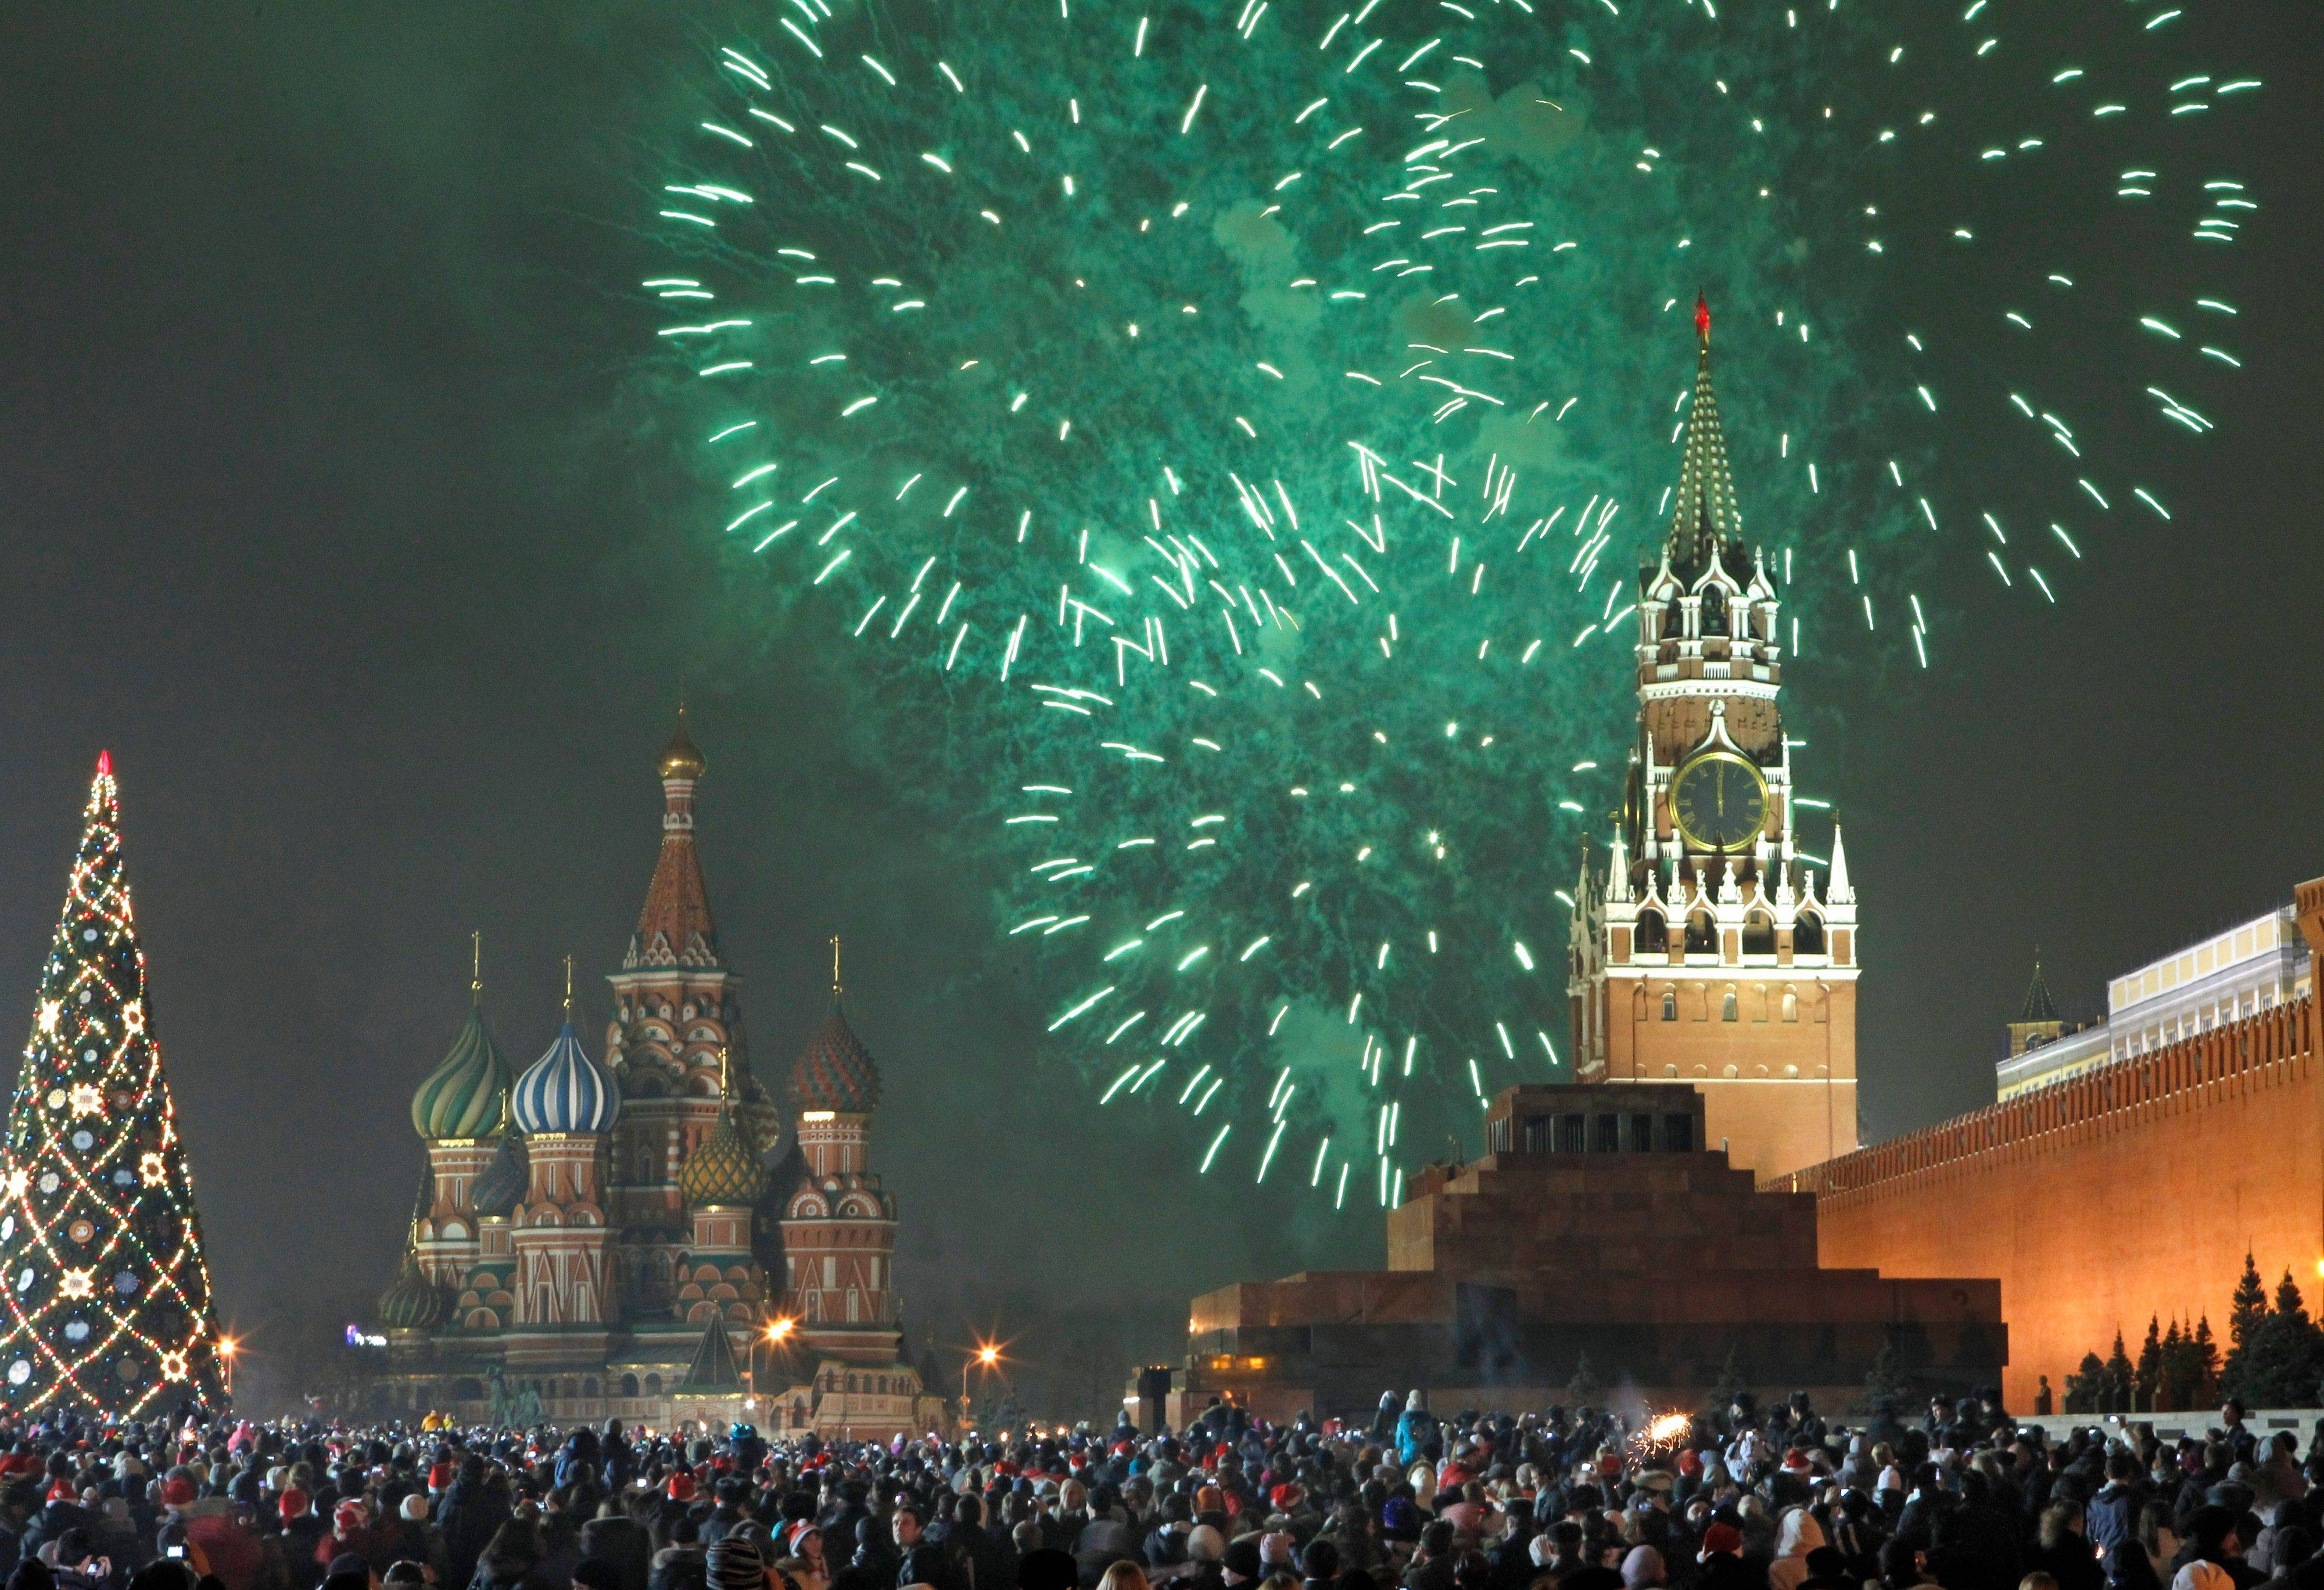 Russians celebrate the New Year on Sunday on Red Square in Moscow, with the Kremlin in the background, right, and St. Basil's cathedral in background left, Russia. Tens of thousands of people gathered on the Square to celebrate the new year, and view the fireworks as the clock on the Kremlin's Spassky Tower, right, struck midnight.